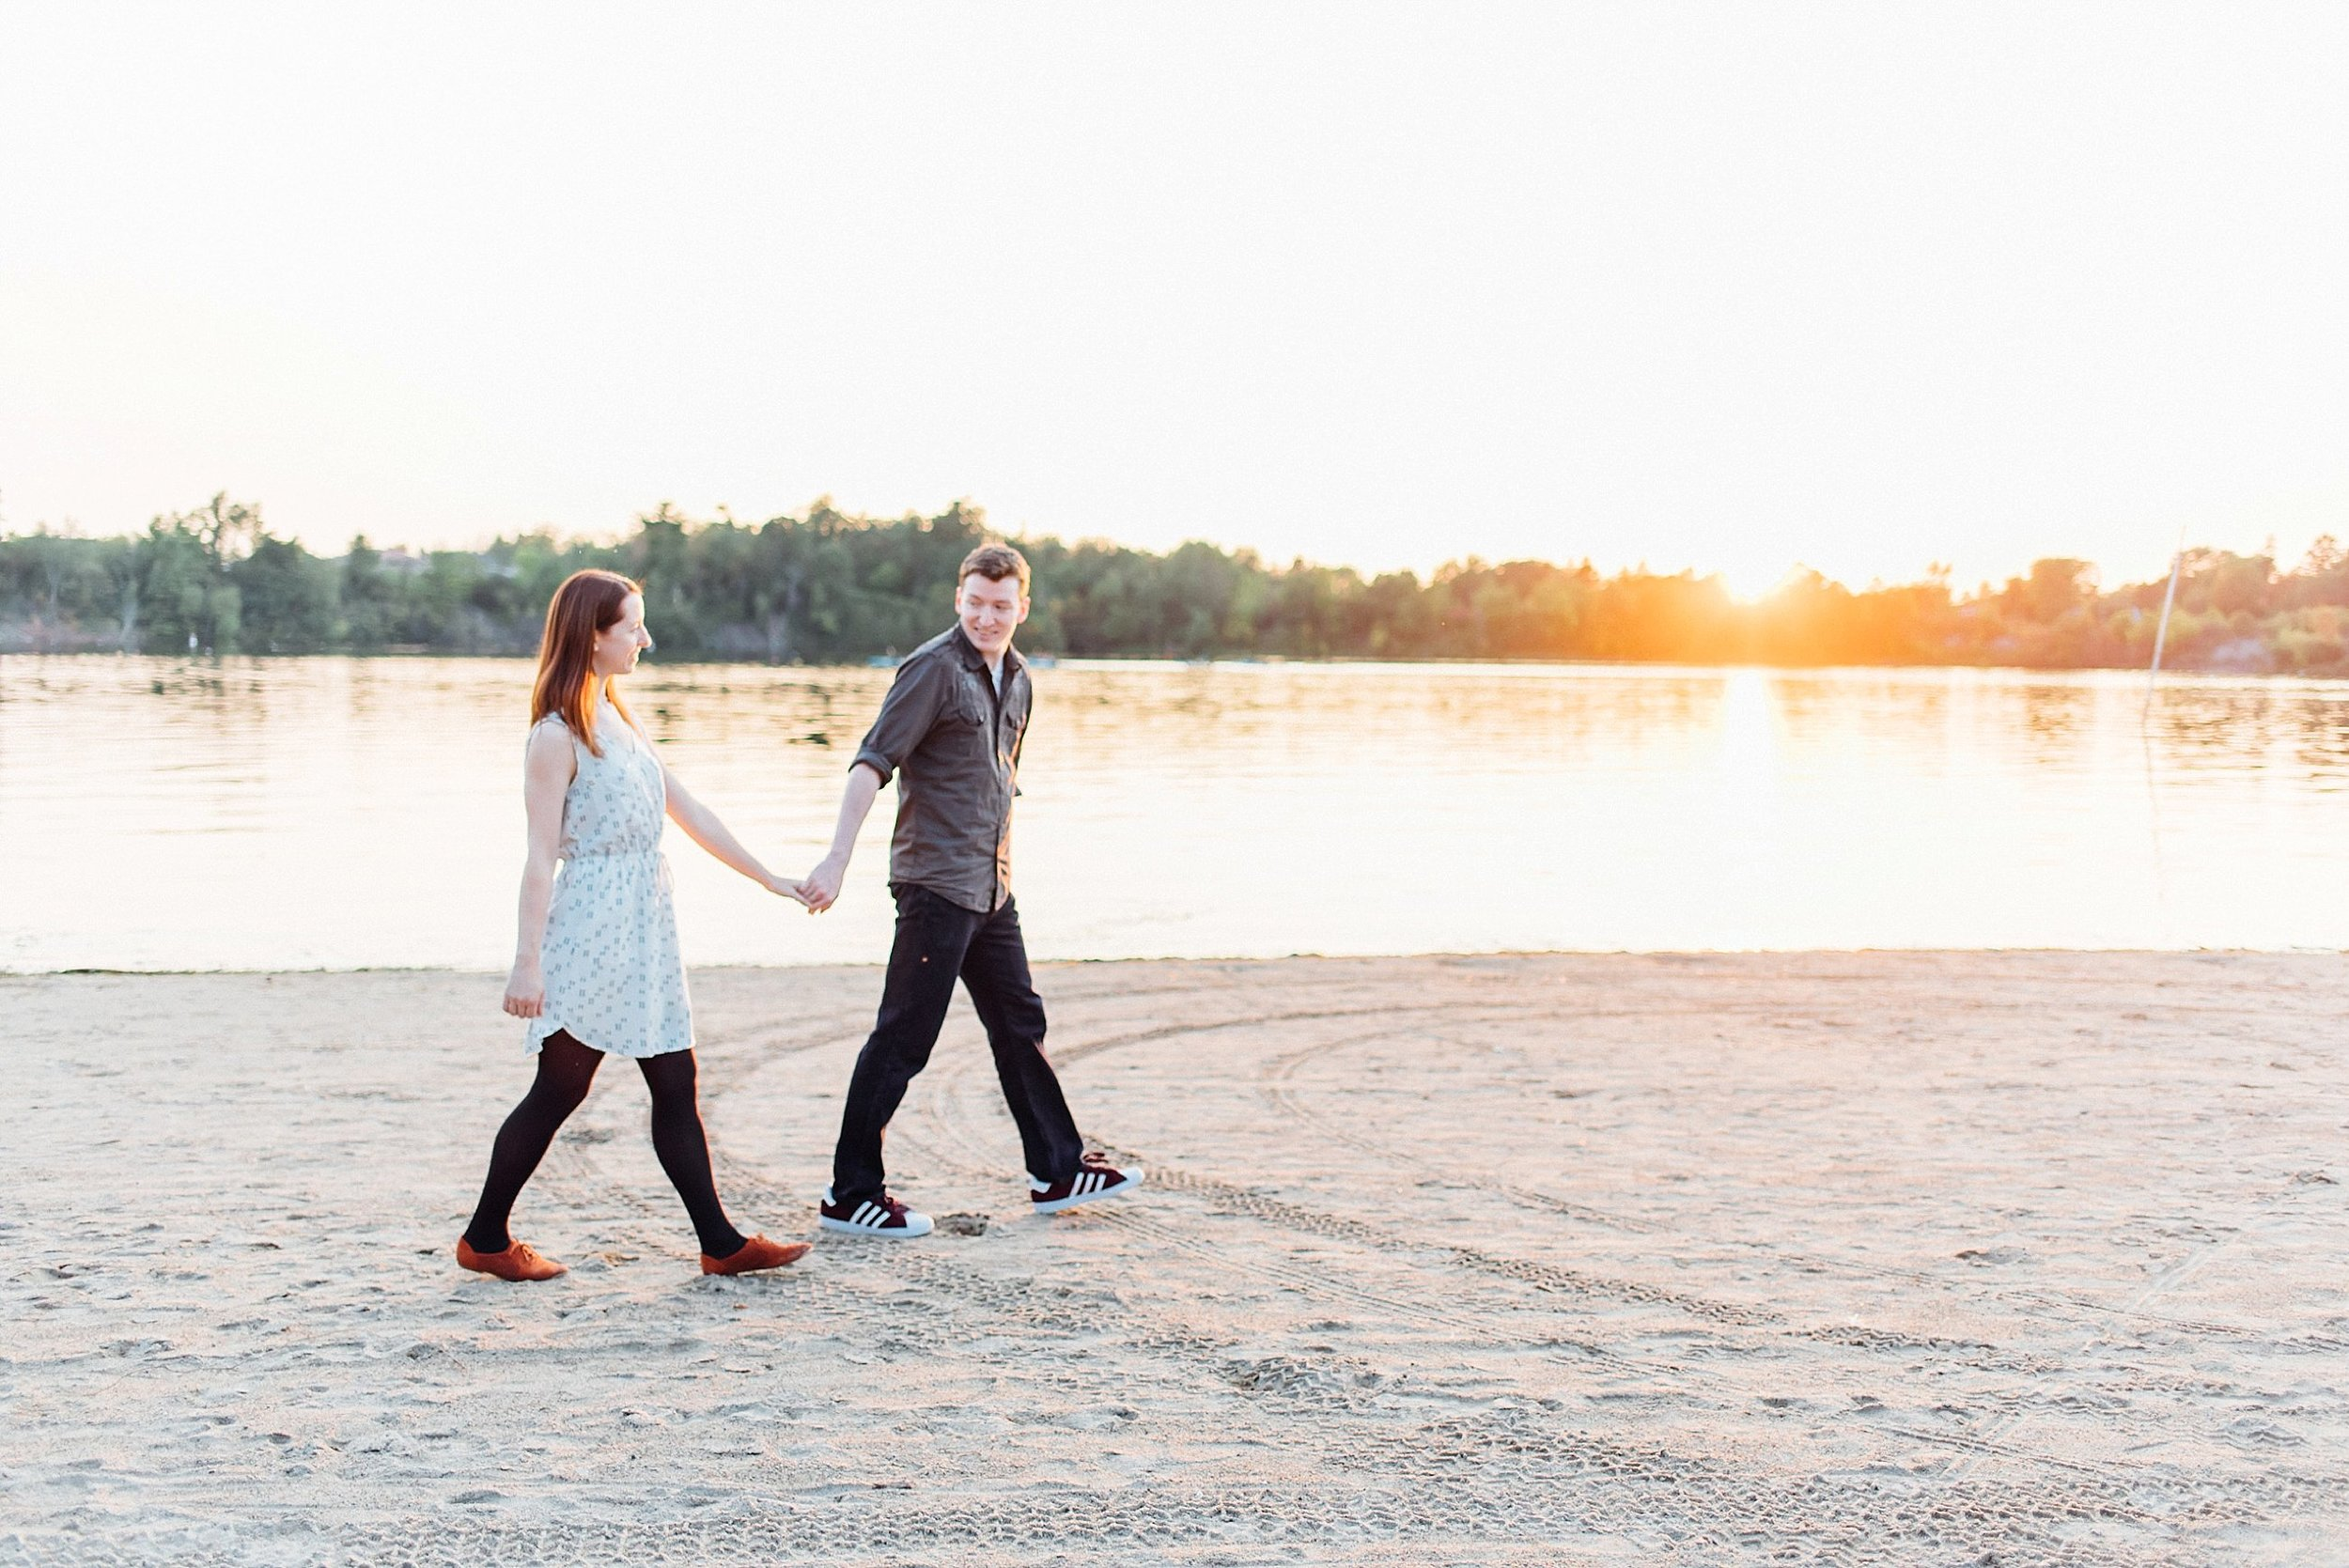 Rebecca + Dan Engagement Shoot | Ali & Batoul Photography-33.jpg